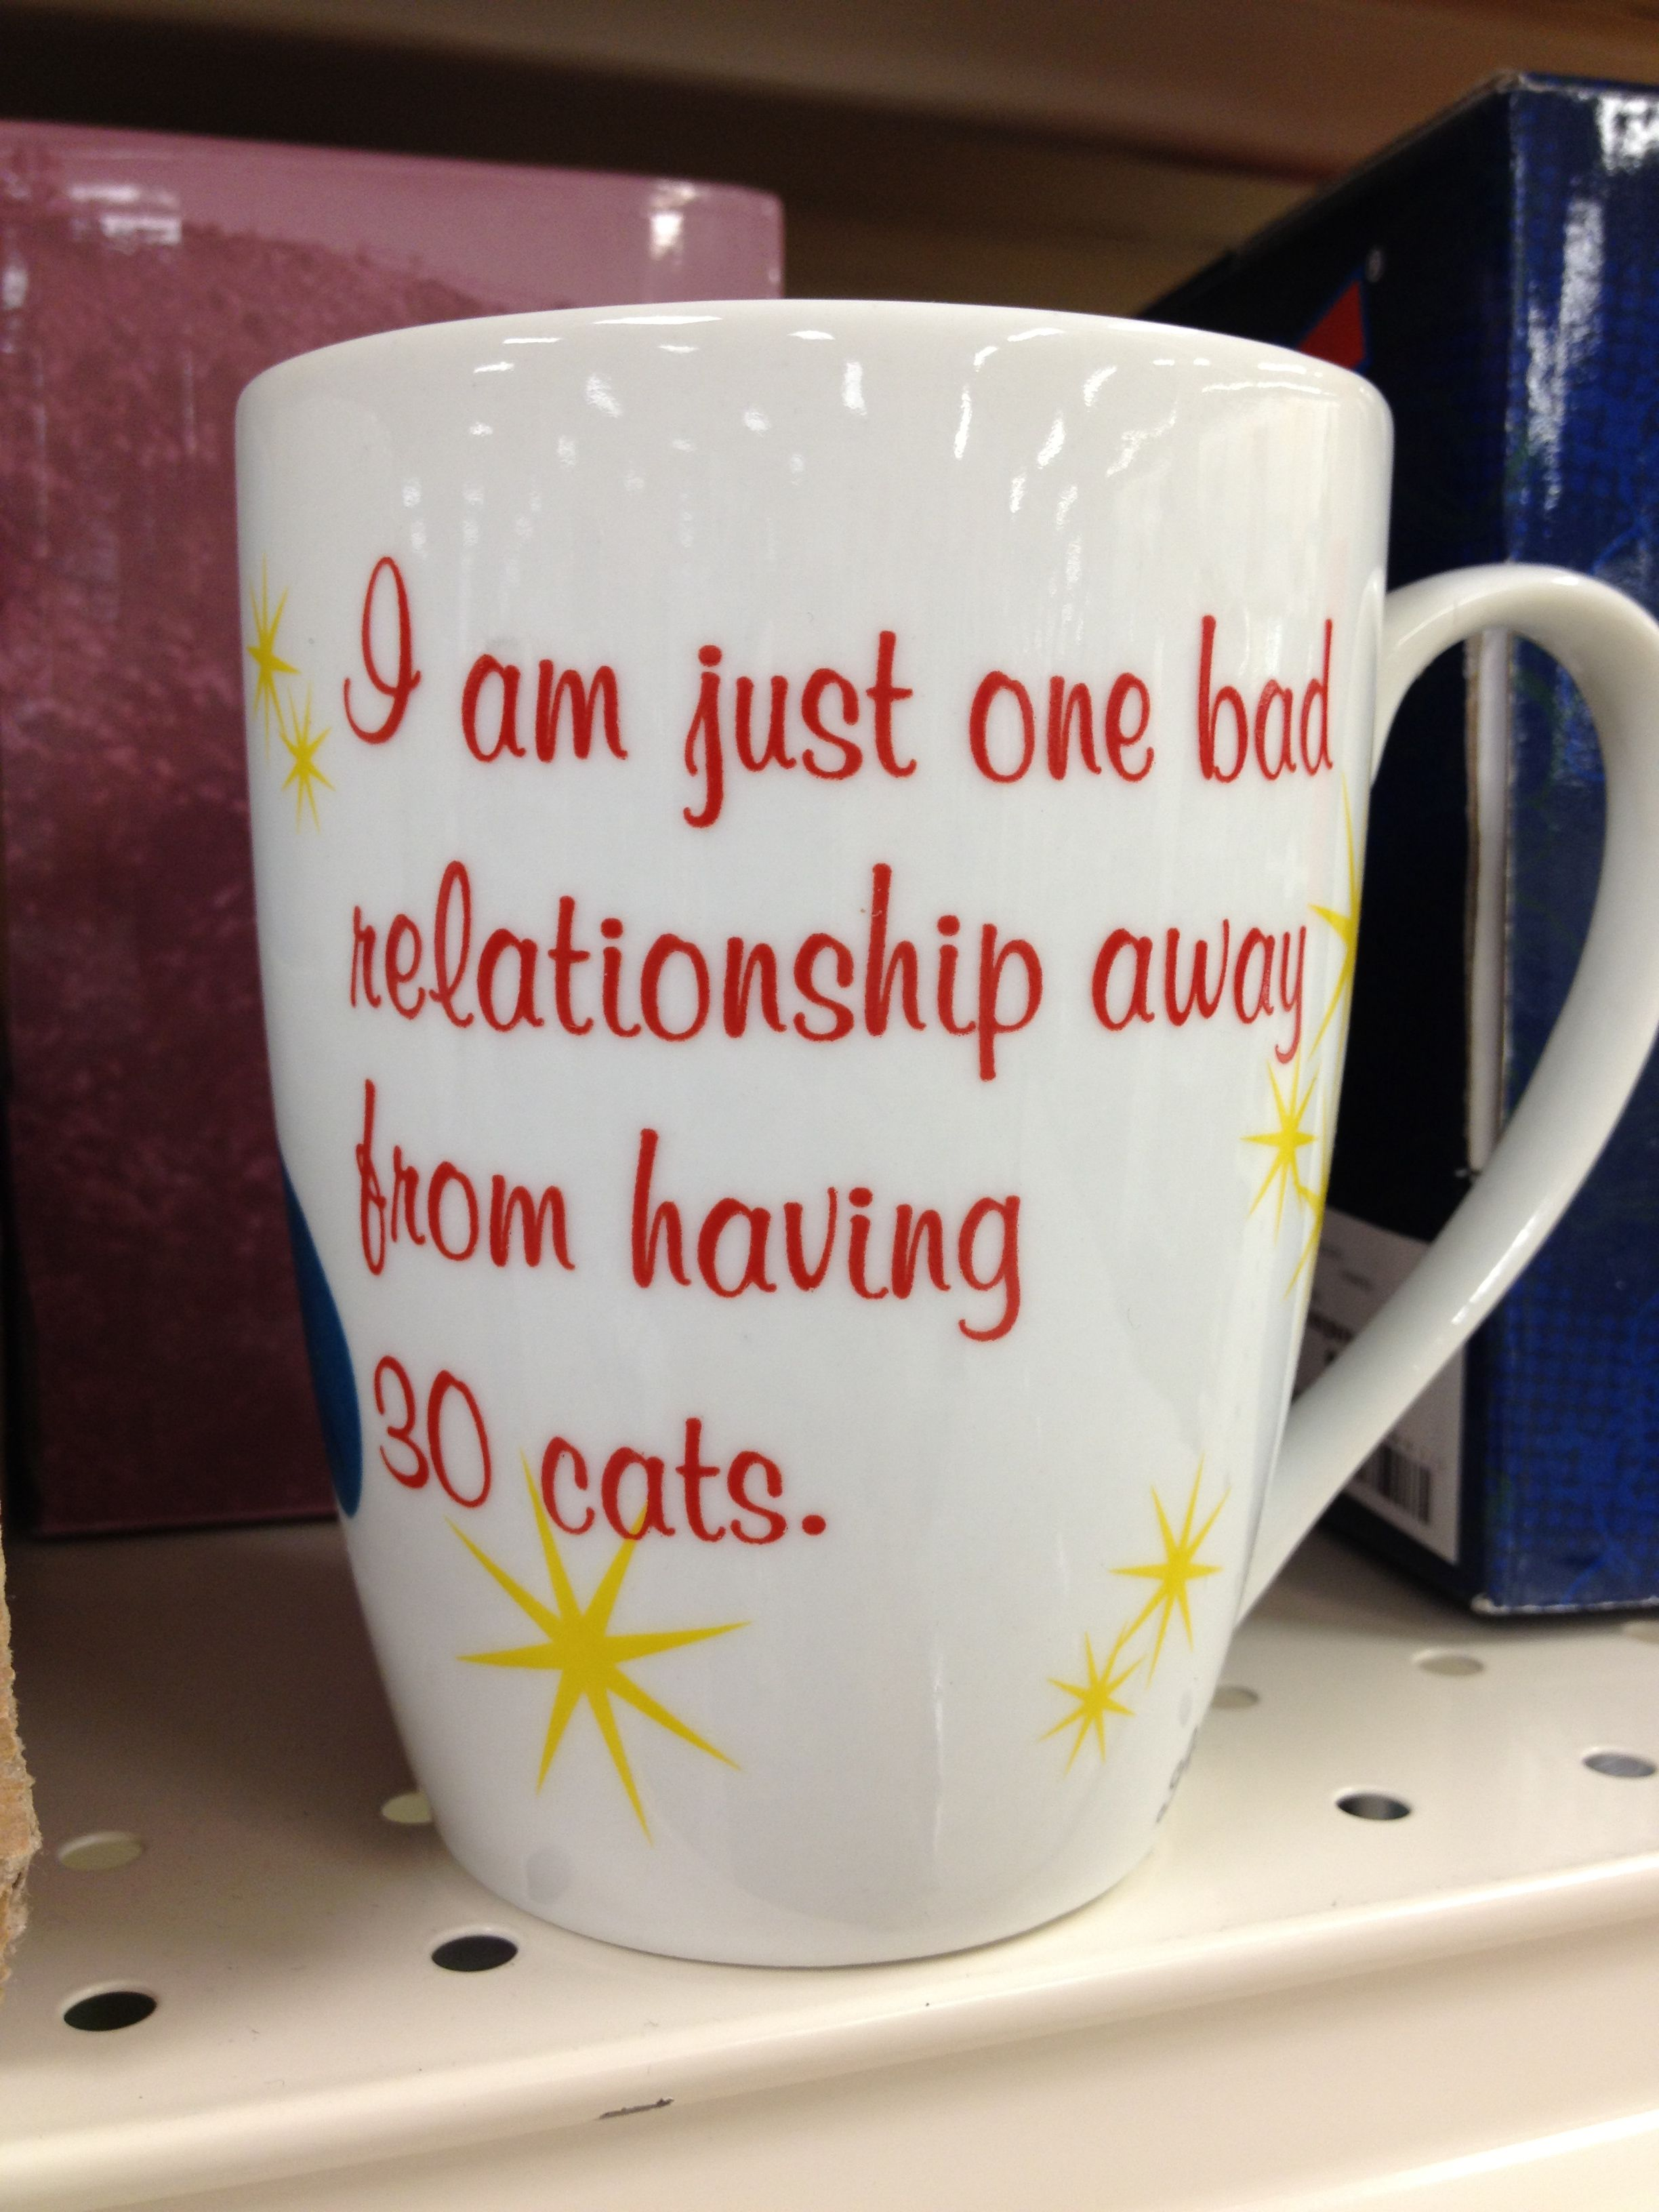 I am just one bad relationship away from having 30 cats.